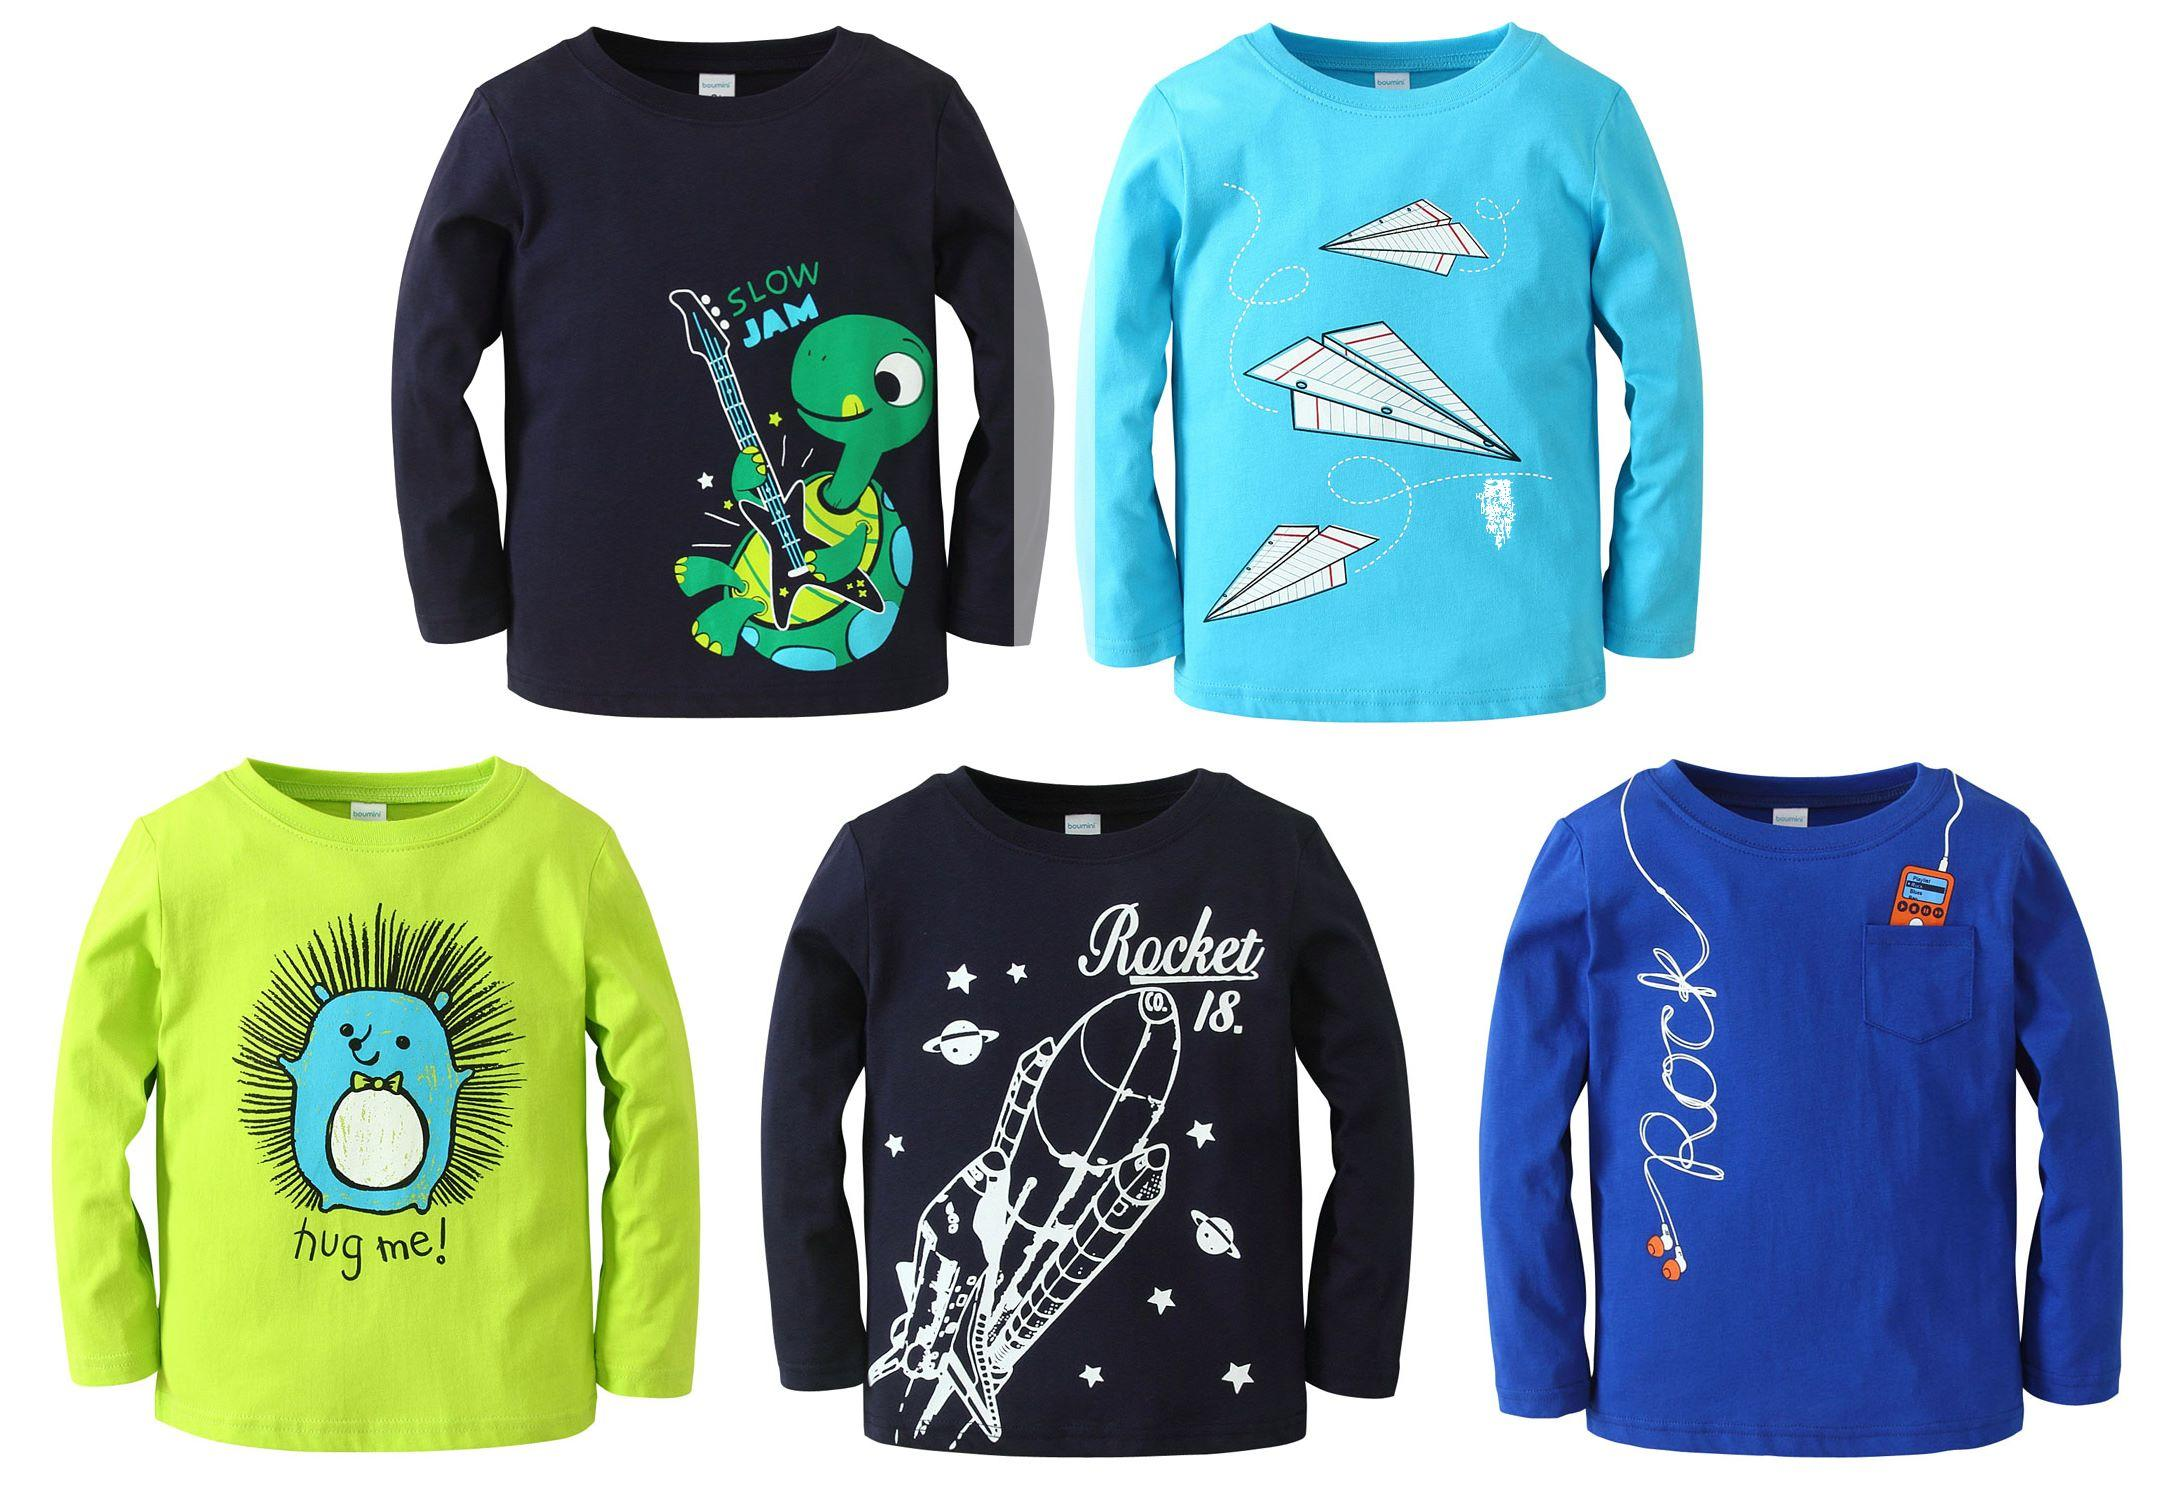 Boumini Boys Long Sleeved T-Shirts - SPECIAL